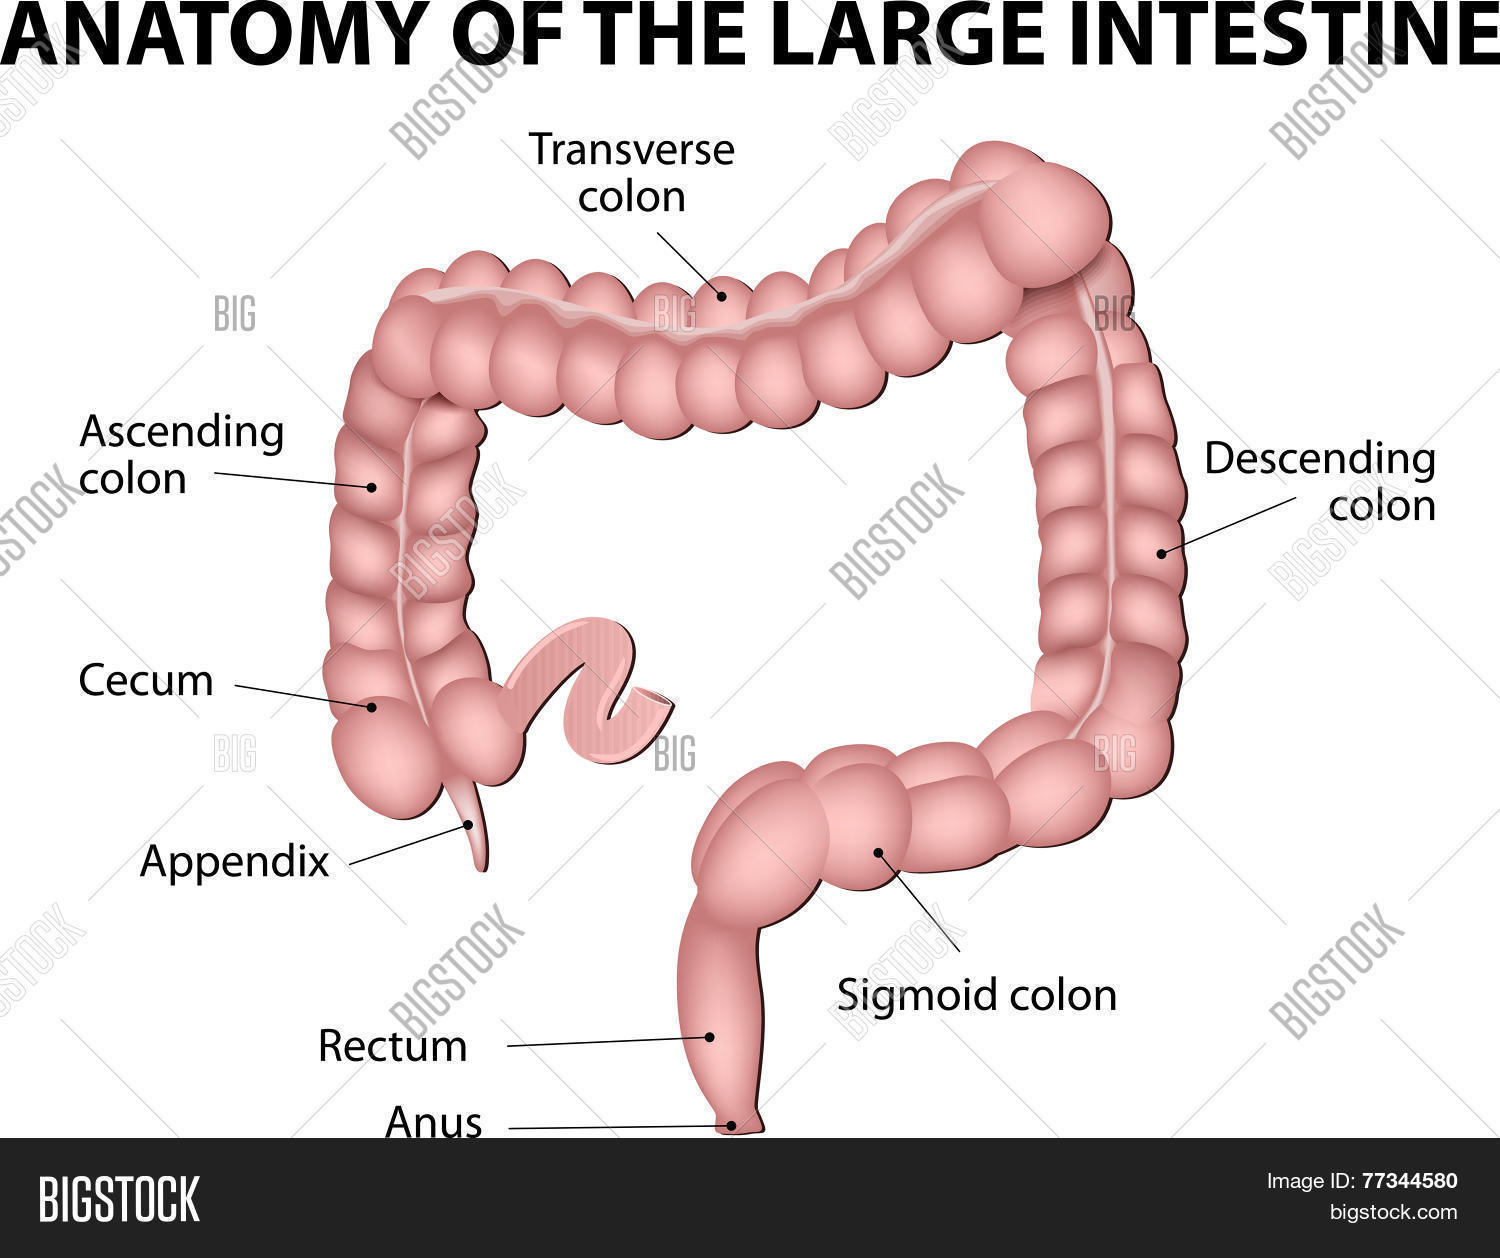 Large Intestine Human Anatomy